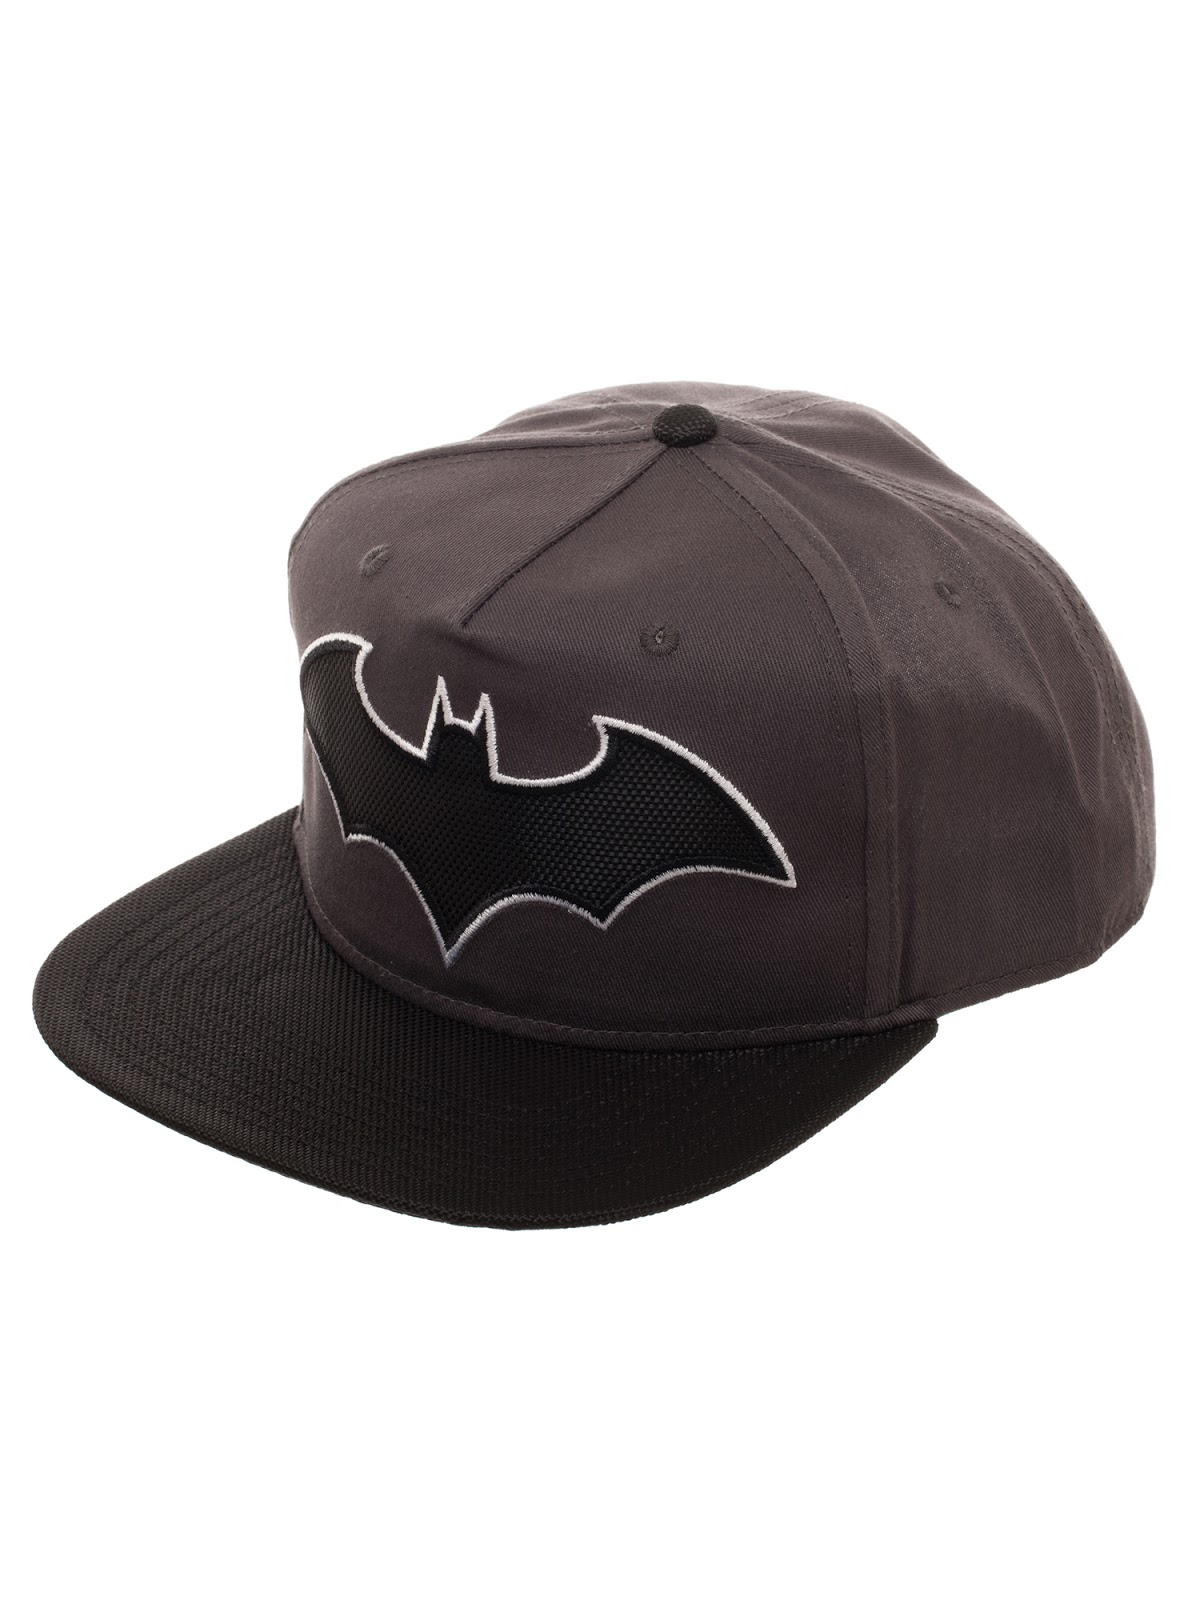 f121378a1 Walmart has the Batman Snapback Hat with Woven Batman Emblem on sale for  $4.19, down from $9.96.